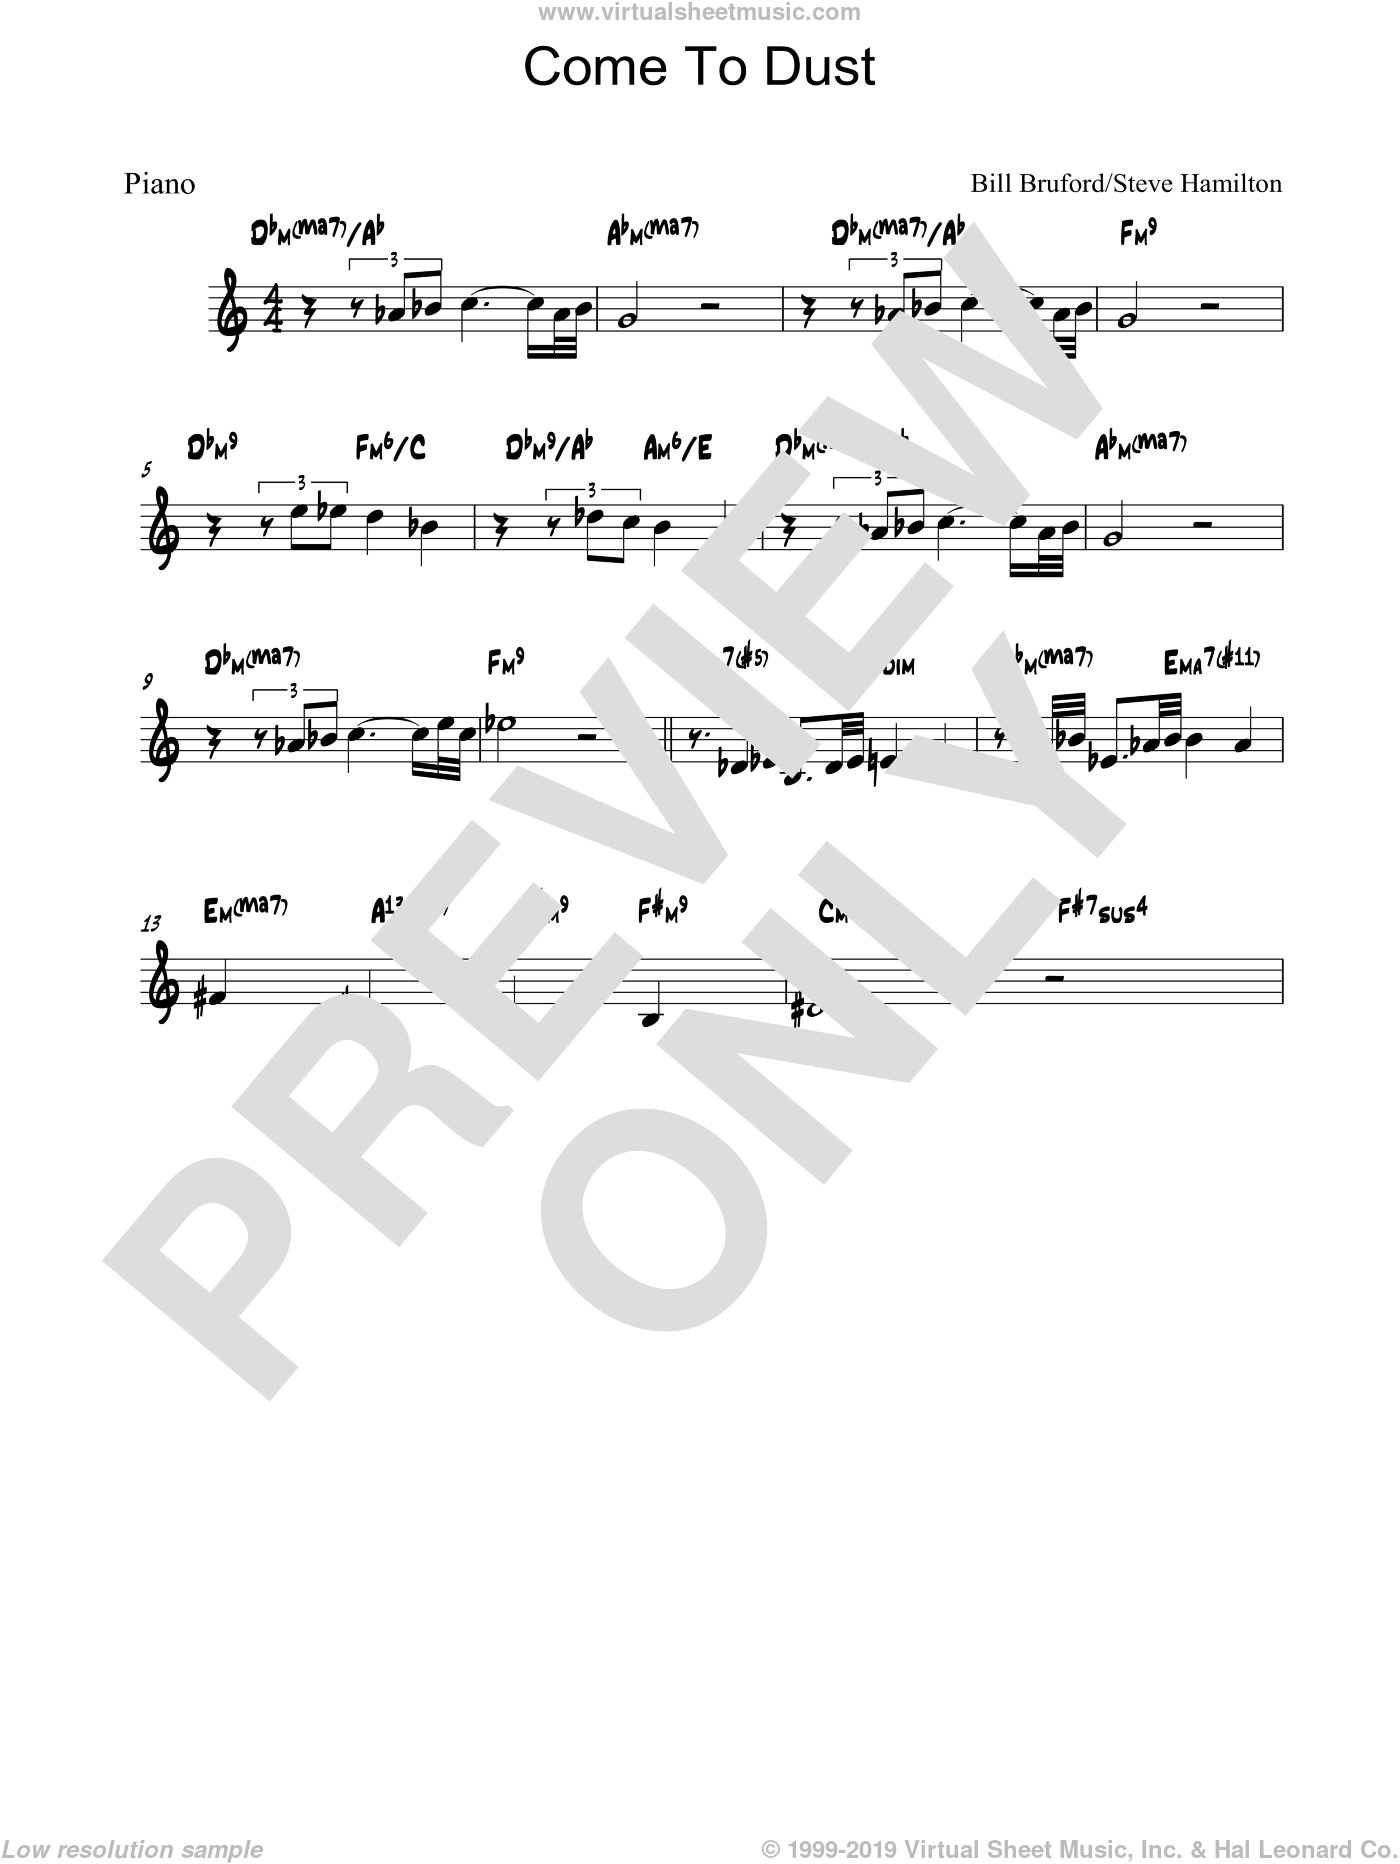 Come To Dust sheet music for piano solo by Steve Hamilton and Bill Bruford. Score Image Preview.